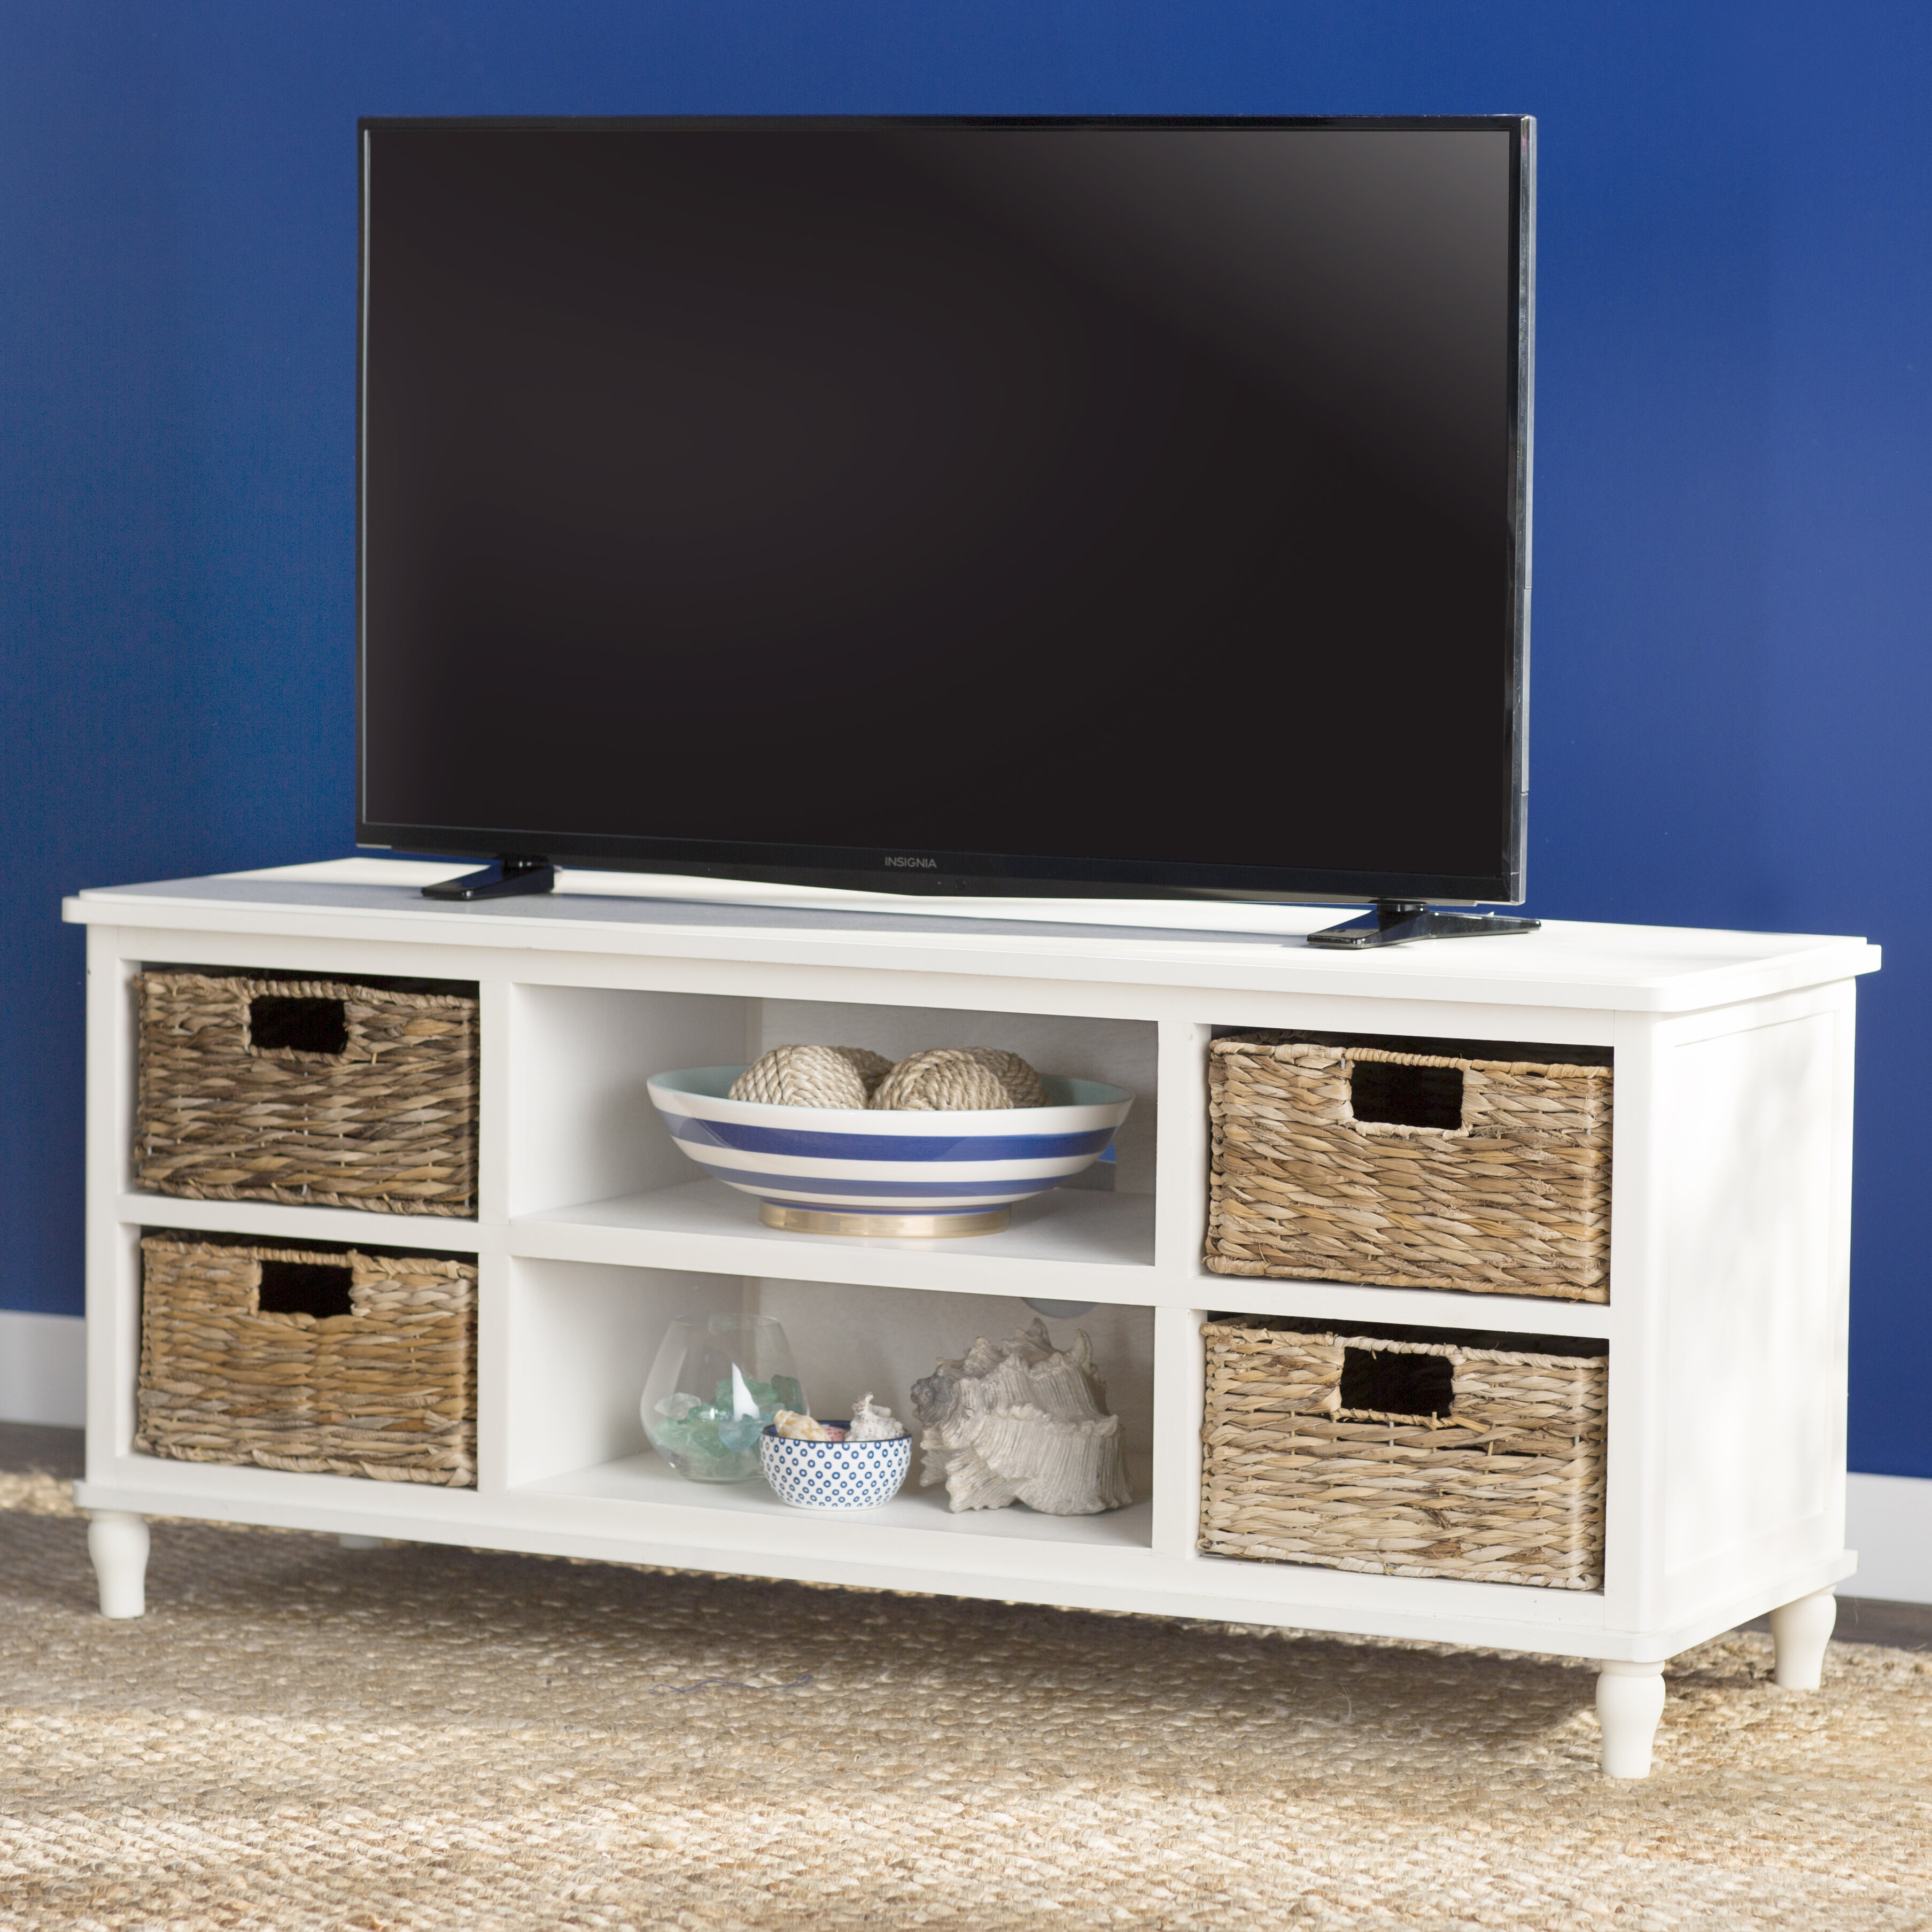 Wall TV Retro Stand Wooden Entertainment Console Table 3-Drawer Furniture Gray